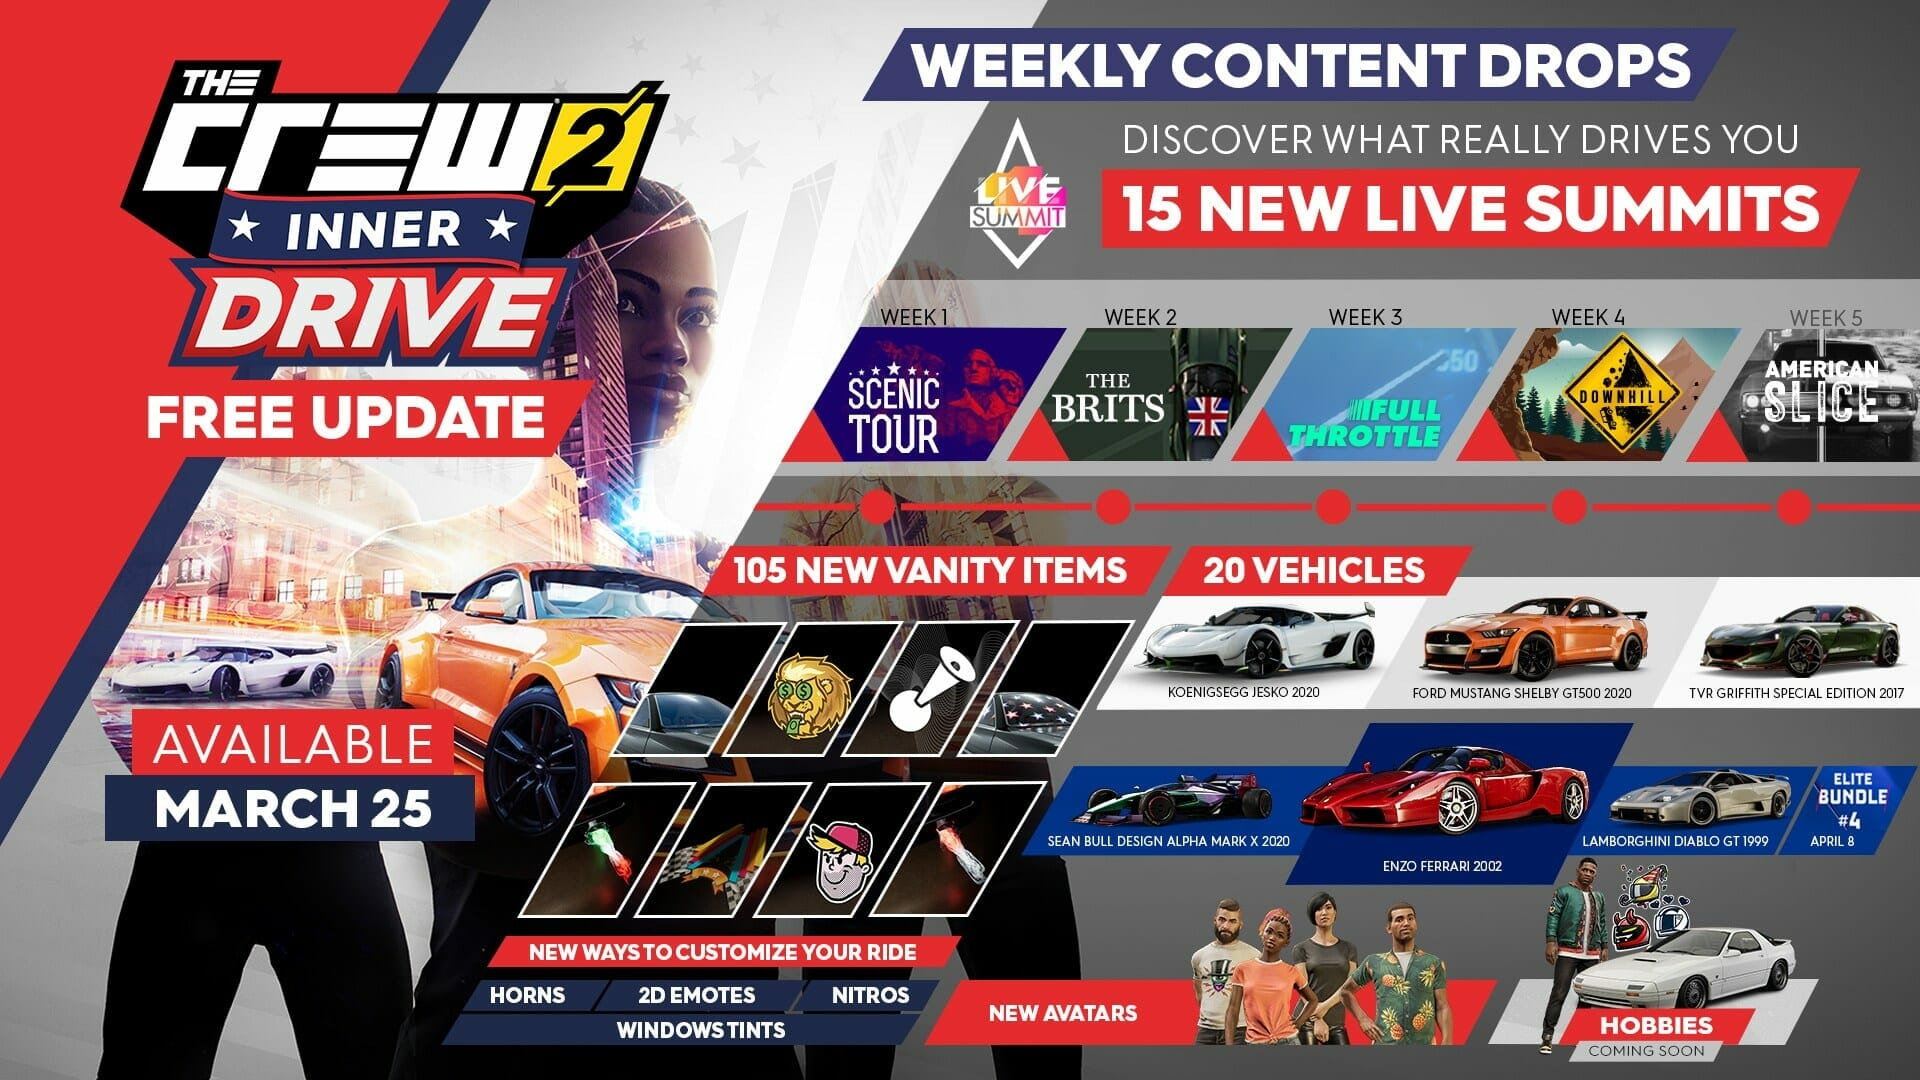 Inner Drive Update Content - The Crew 2 Inner Drive Update launching today on PC, Consoles and Stadia